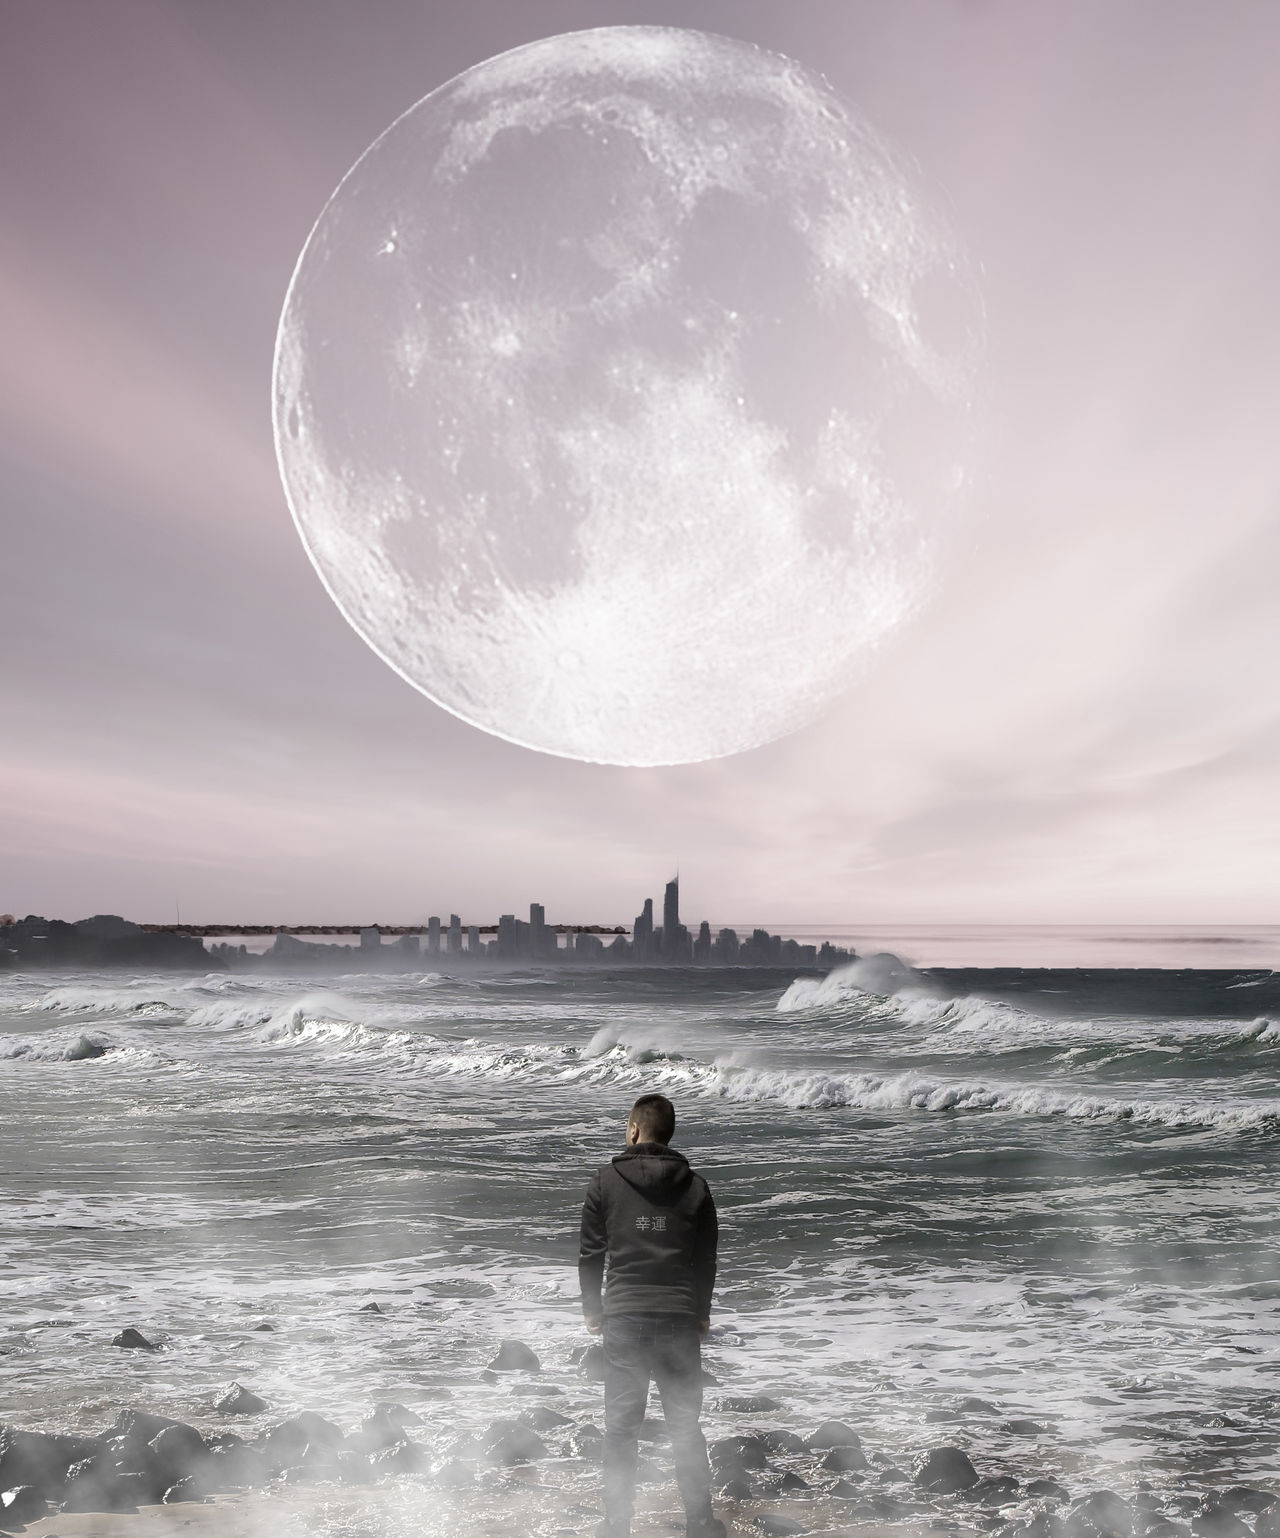 i'm looking for ways Photomanipulation Photoshop EyeEm Gallery EyeEm Best Edits Lucky's Memories Bittersweet Life Sea Seaside Melancholic Landscapes Moon The Innovator Fantasy Surrealism Artistic Photo Skyline View Landscape Digital Art Journey Fog Showcase April Colors Photoshop Compositing Stormy Weather Shootermag